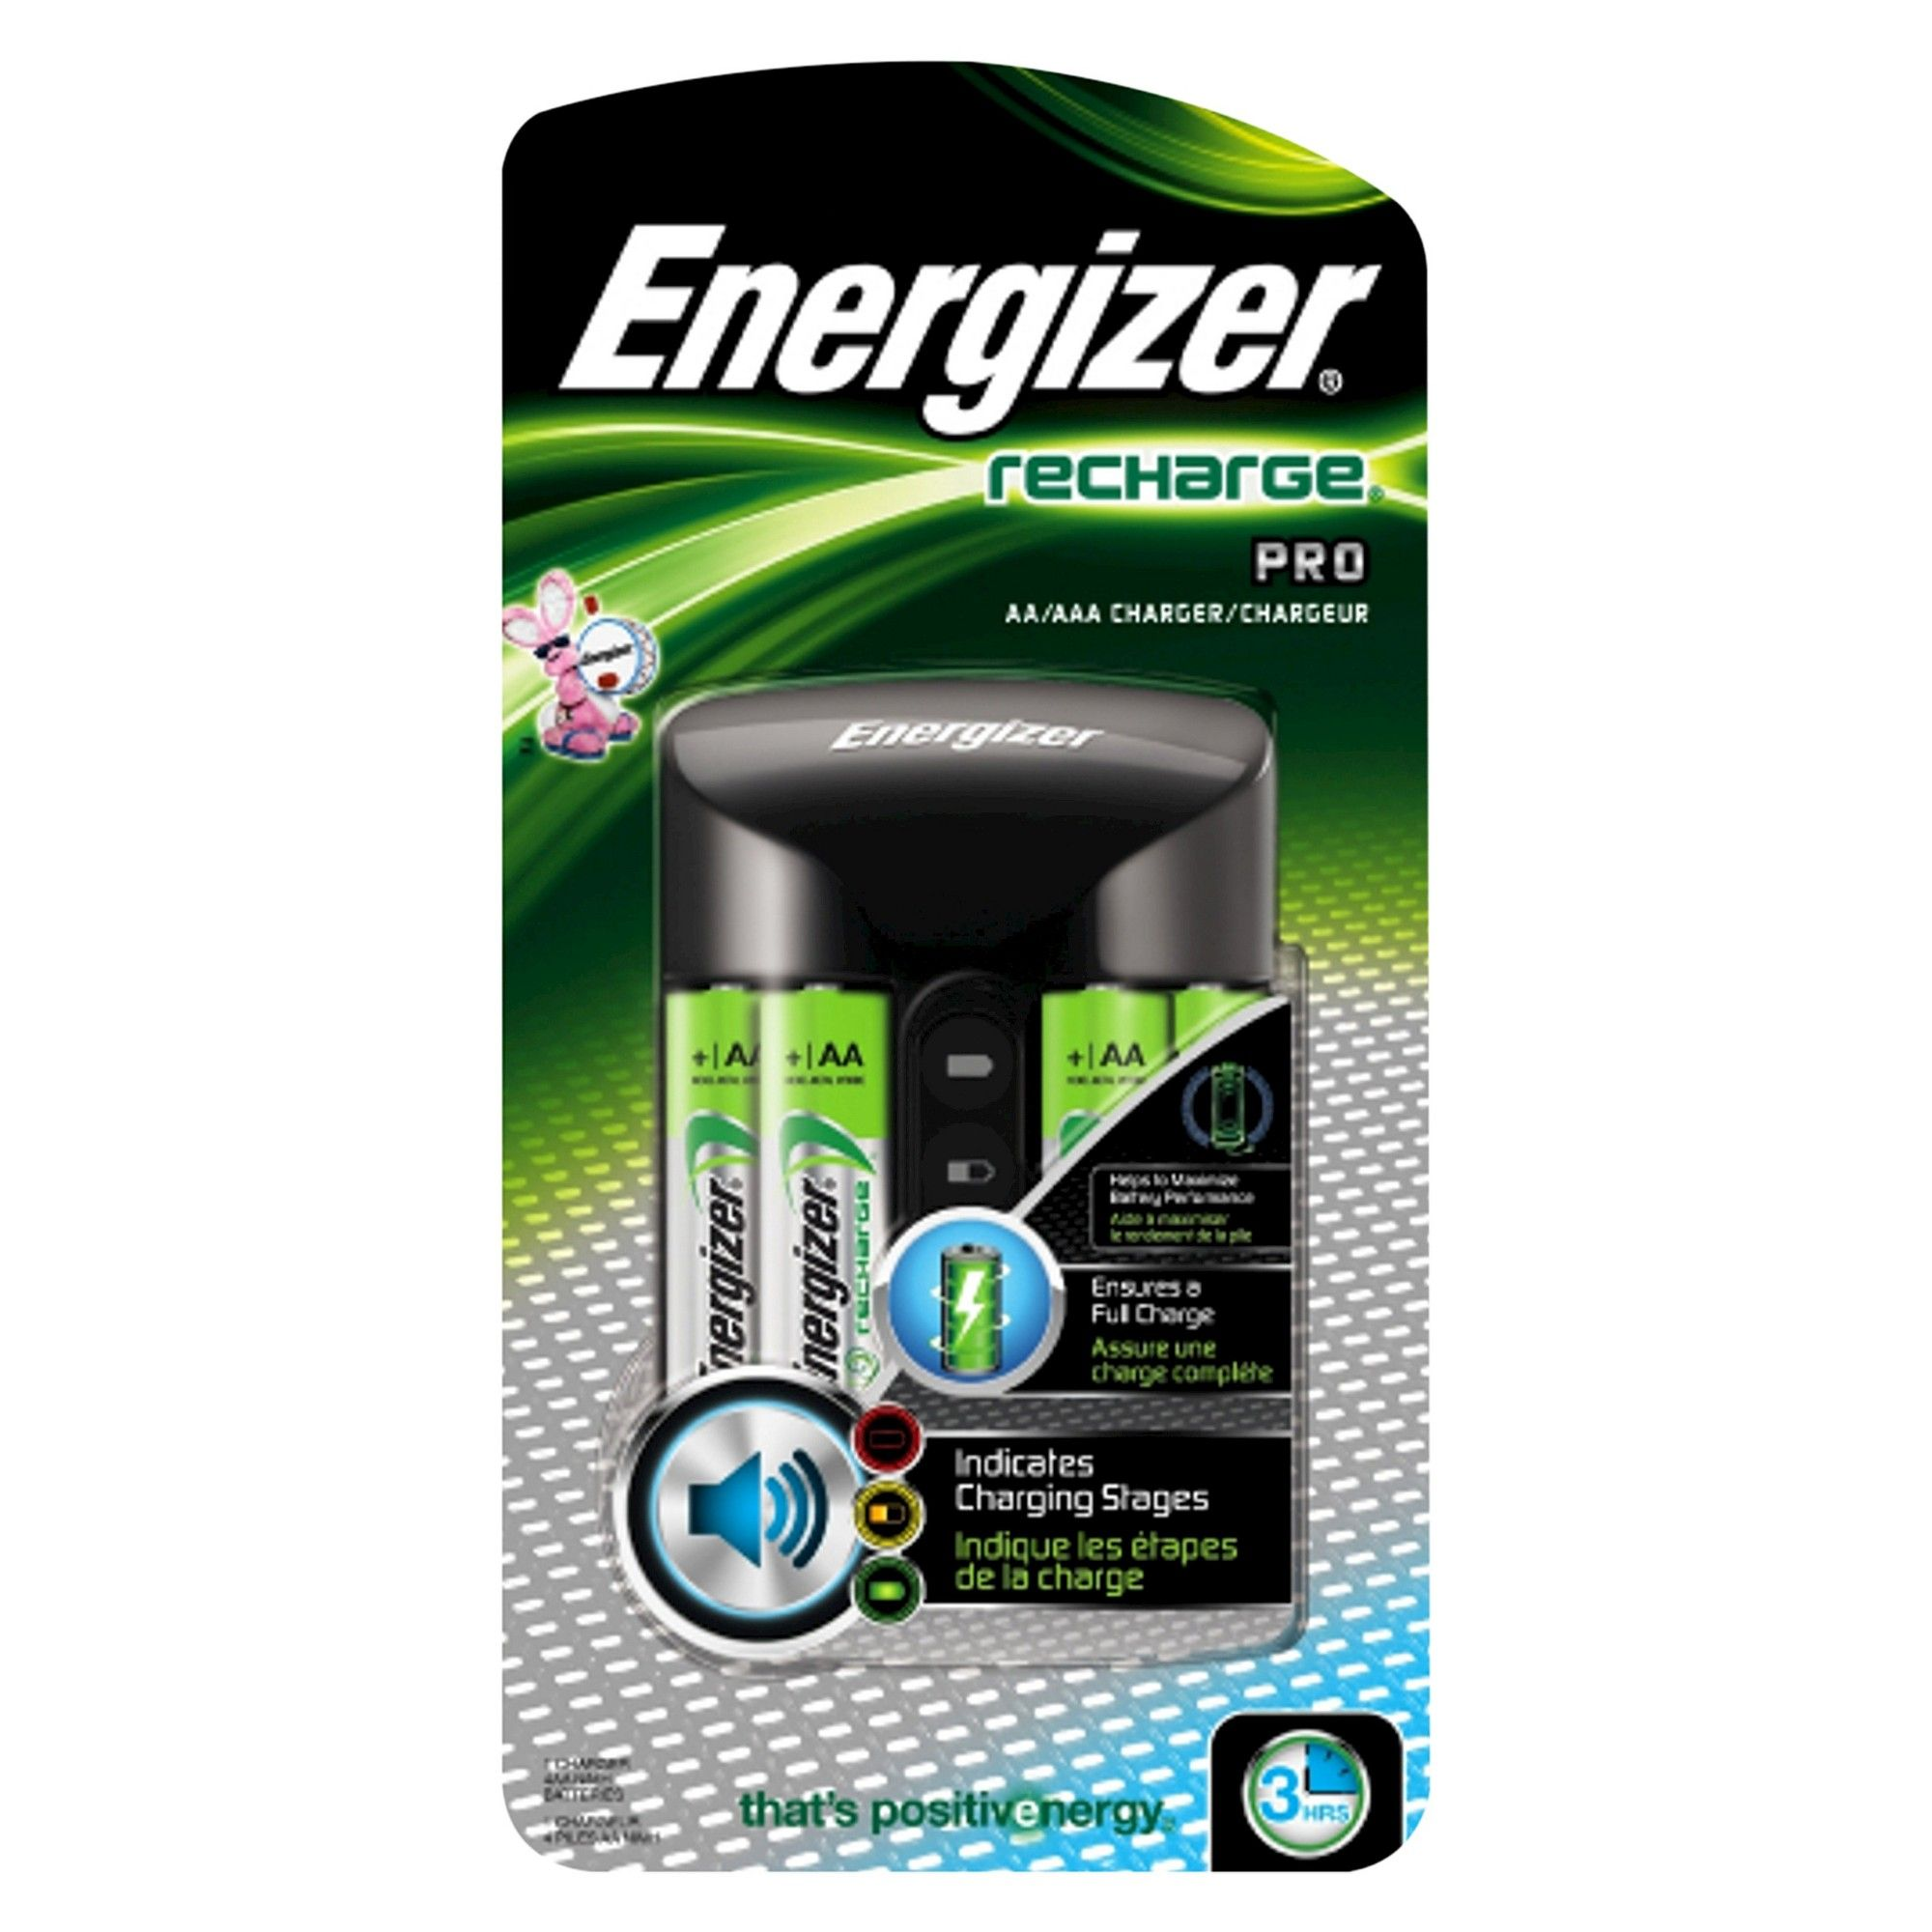 Energizer Rechargeable AA /& AAA Battery Charger 4 NiMH Batteries Recharge Pro